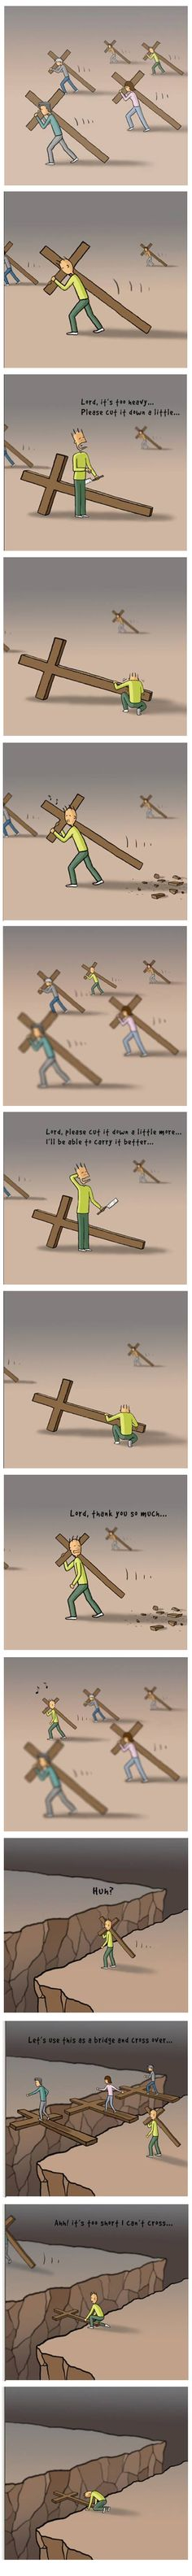 Sometimes we complain about the cross we bear, not realizing that its preparing us for the dip in the road that God can see and we cannotThis is eye opening! Wow more funny pics on facebook: https://www.facebook.com/yourfunnypics101